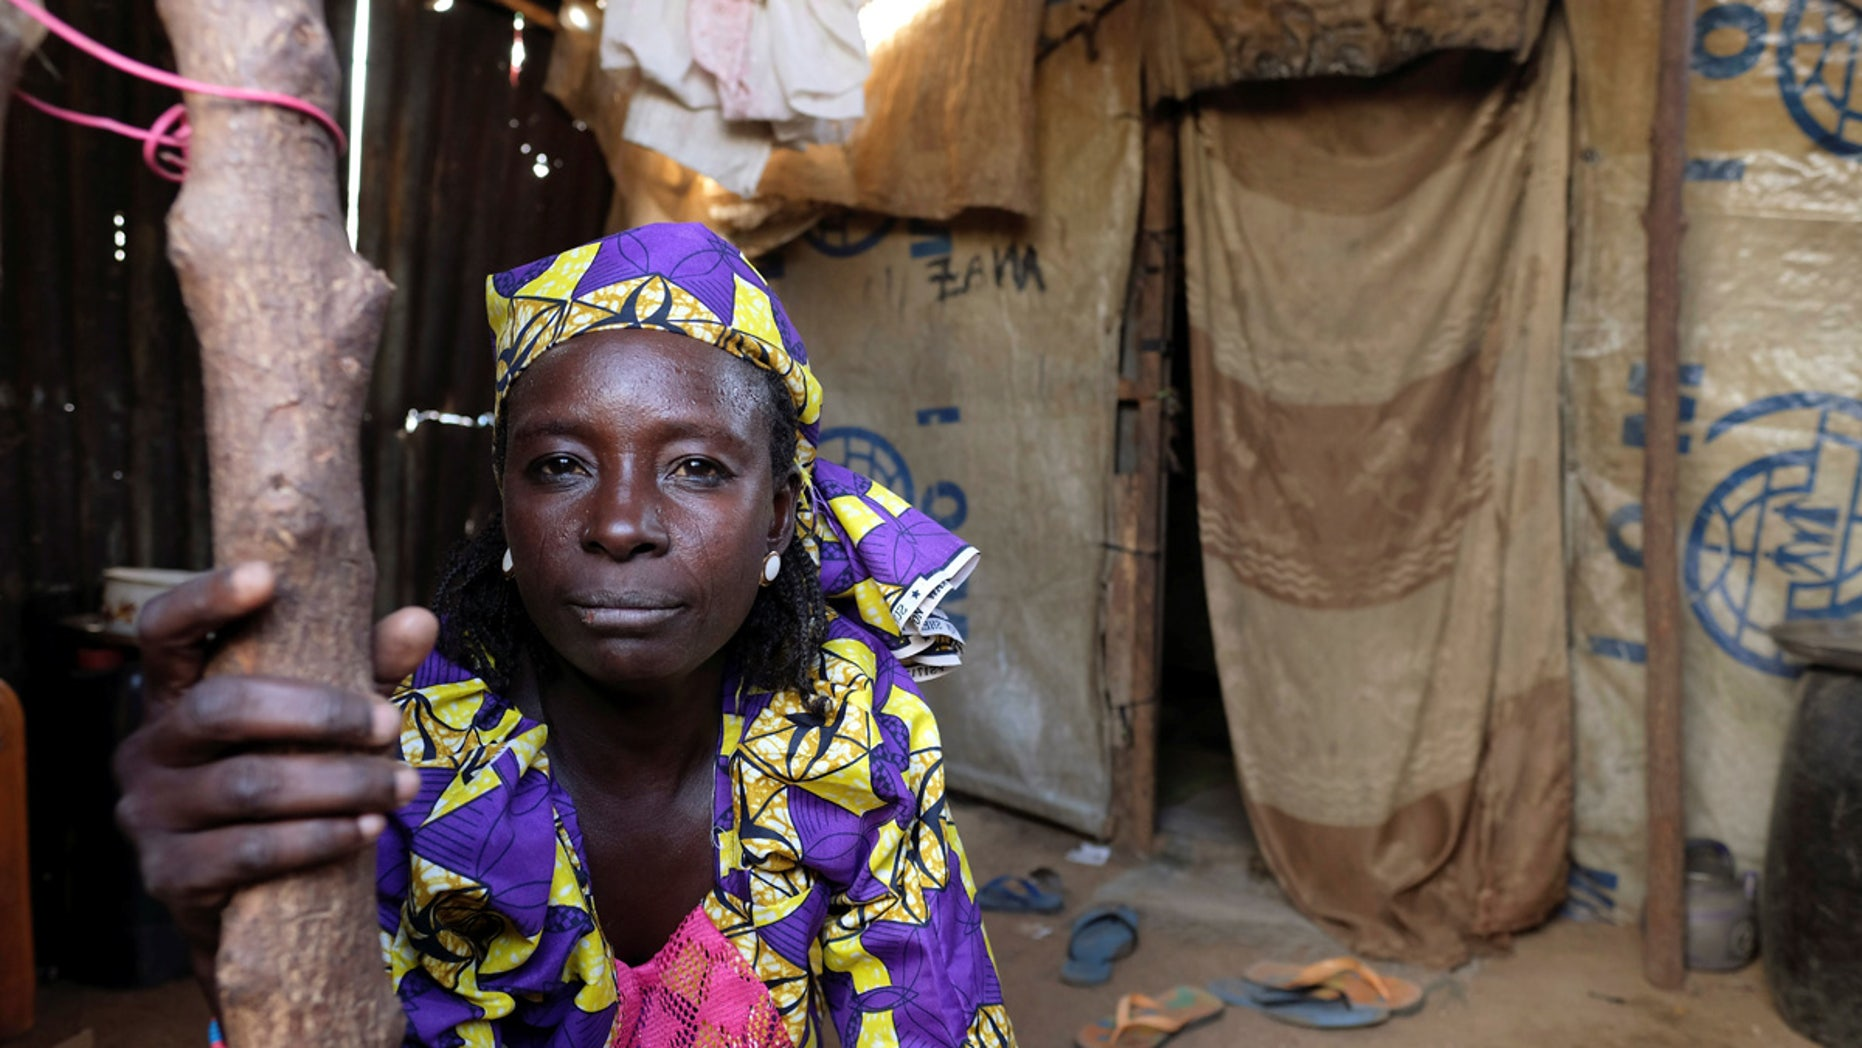 Zainab Bukar, an internally displaced person living in Bama camp, Nigeria, poses for a photograph in a shelter, Nov. 23, 2017.